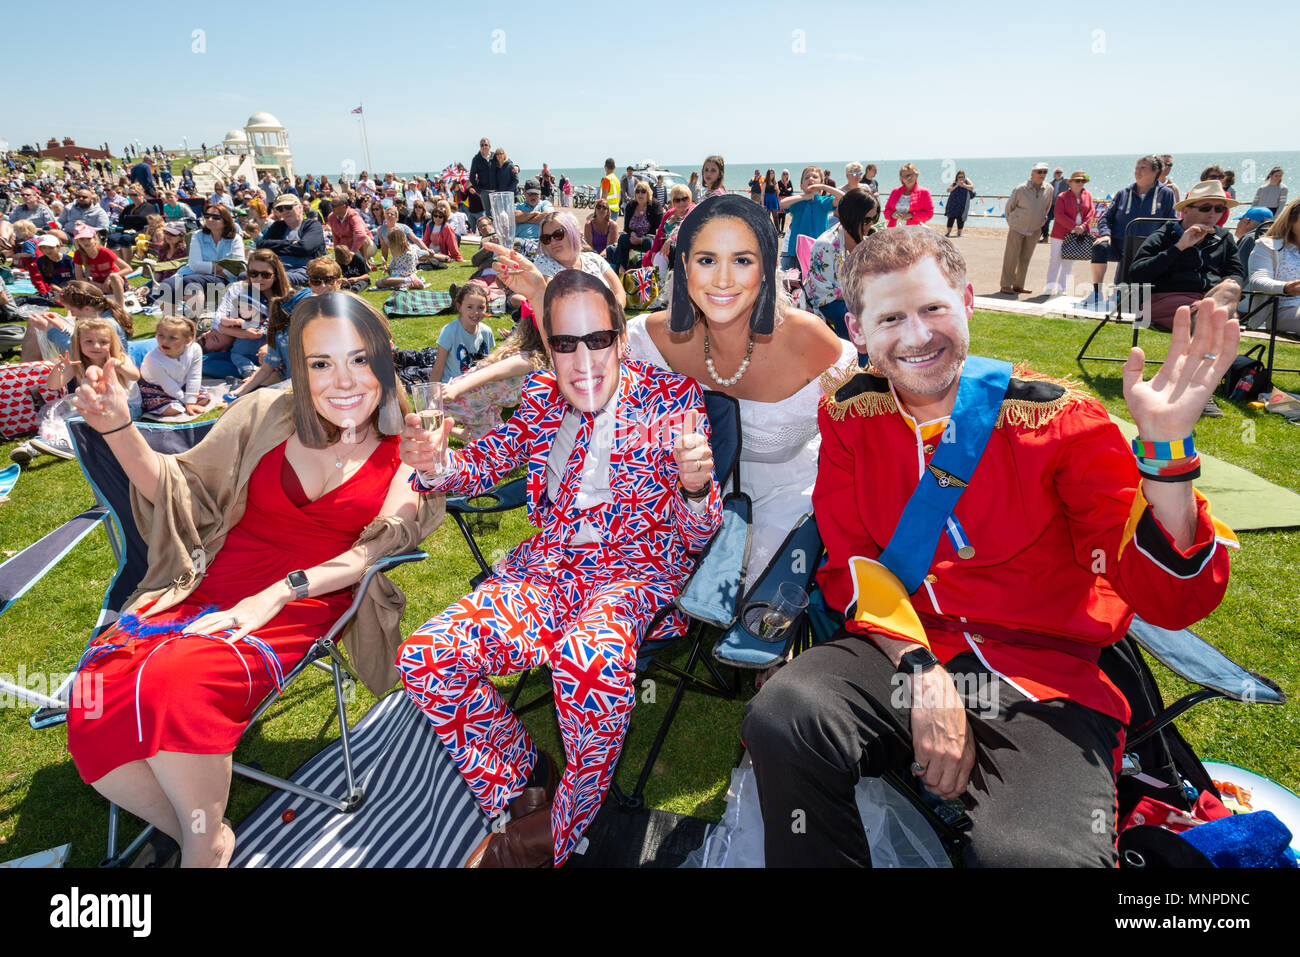 Couples wearing Prince William, Kate Middleton, Prince Harry and Meghan Markle masks, celebrate Prince Harry and Meghan Markle's wedding at a Royal wedding event on the seafront at Bexhill On Sea, East Sussex, UK. Stock Photo